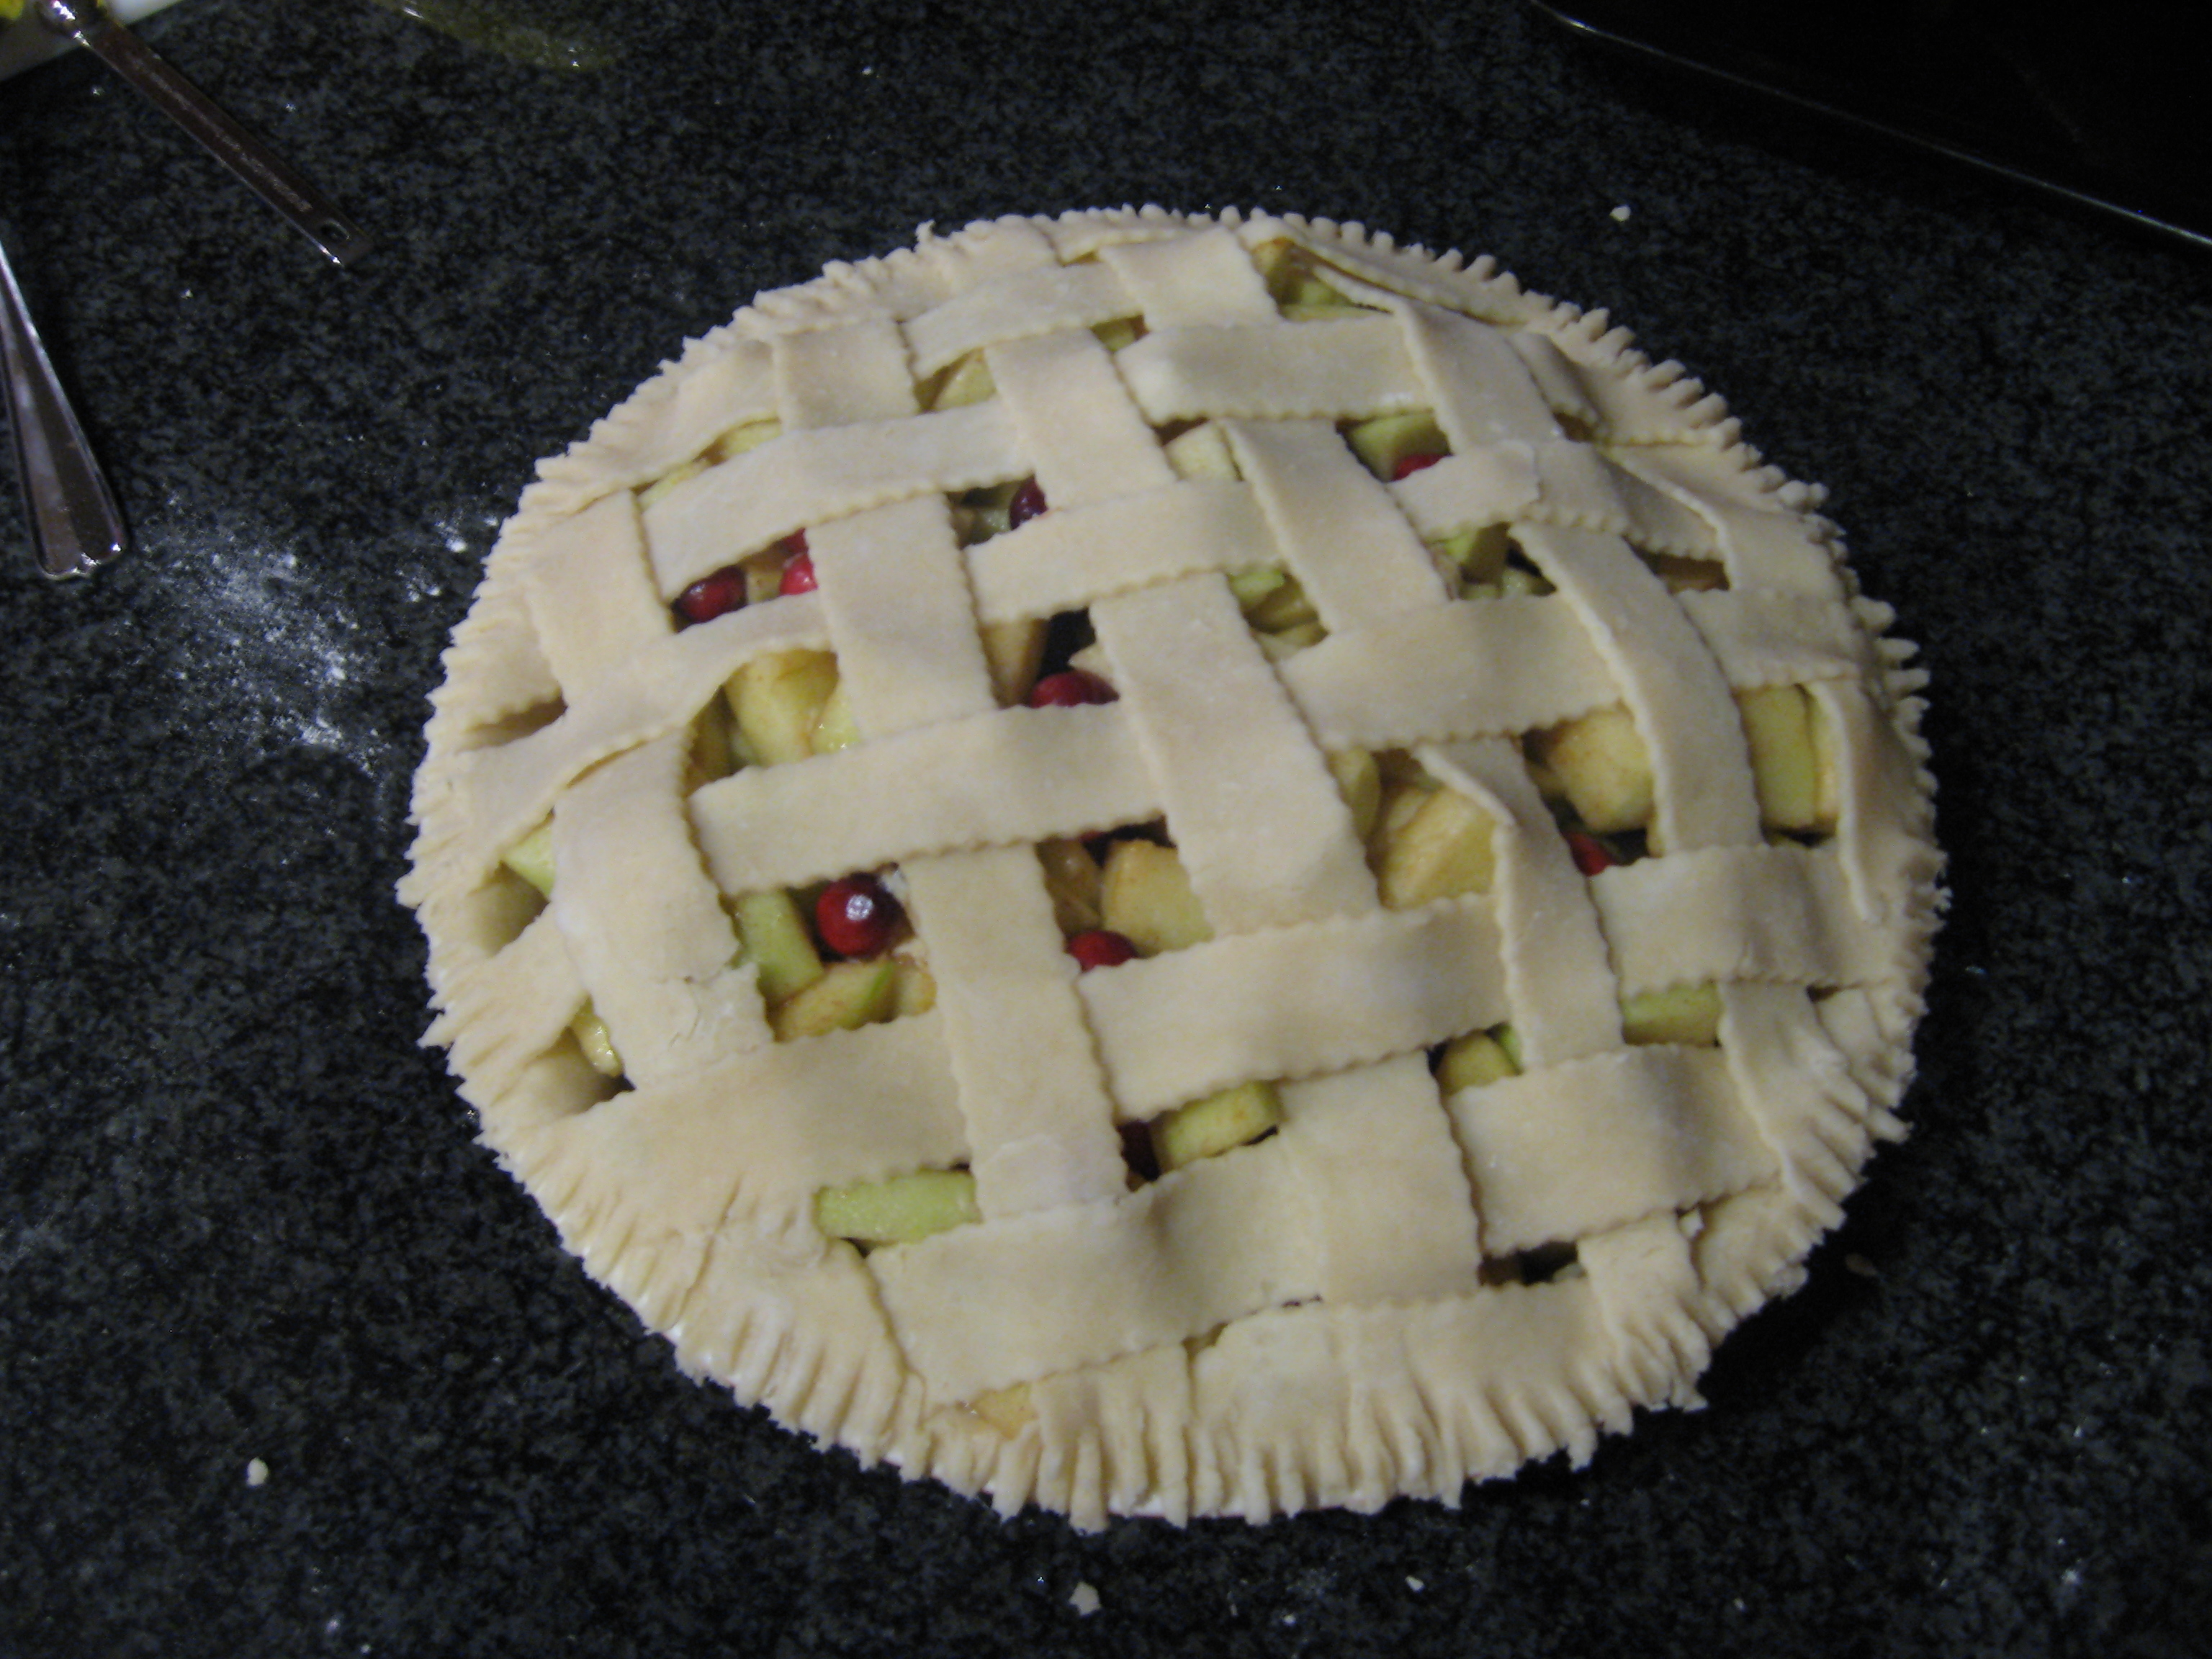 File:Apple-cranberry pie before baking, October 2007.jpg - Wikimedia ...